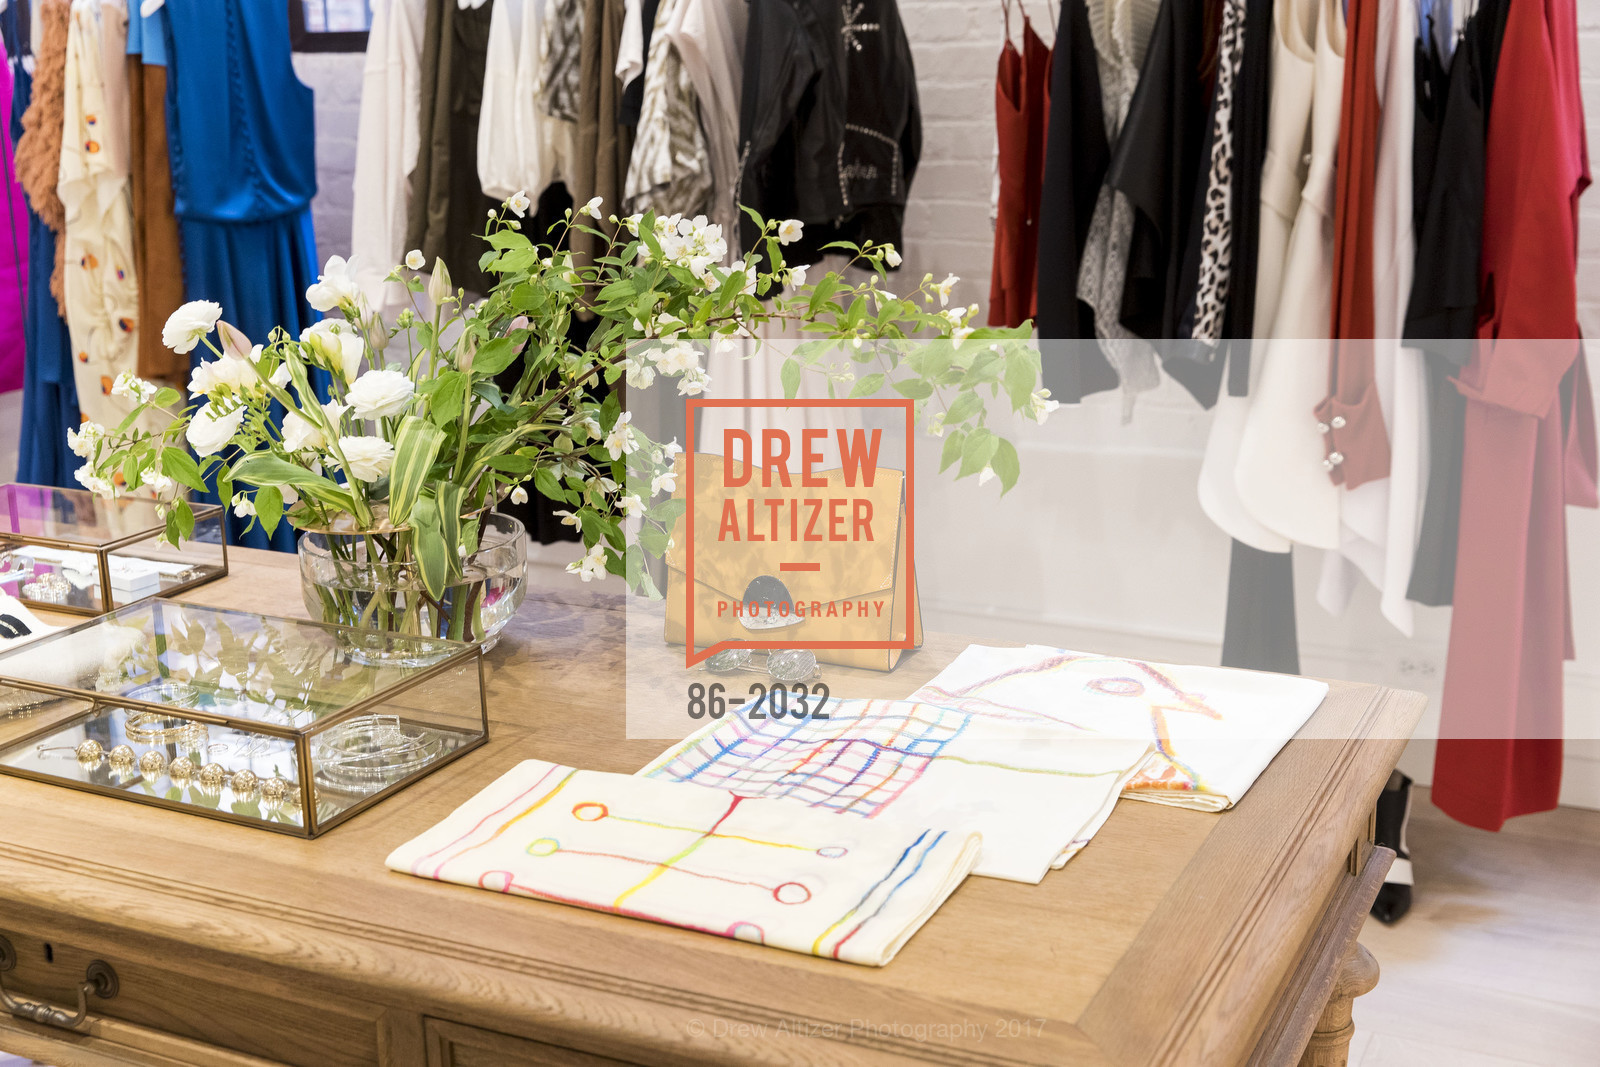 Atmosphere, Nellie Partow F17 Trunkshow at PIA (The Store), PIA. 414 Jackson St.  San Francisco, California, April 19th, 2017